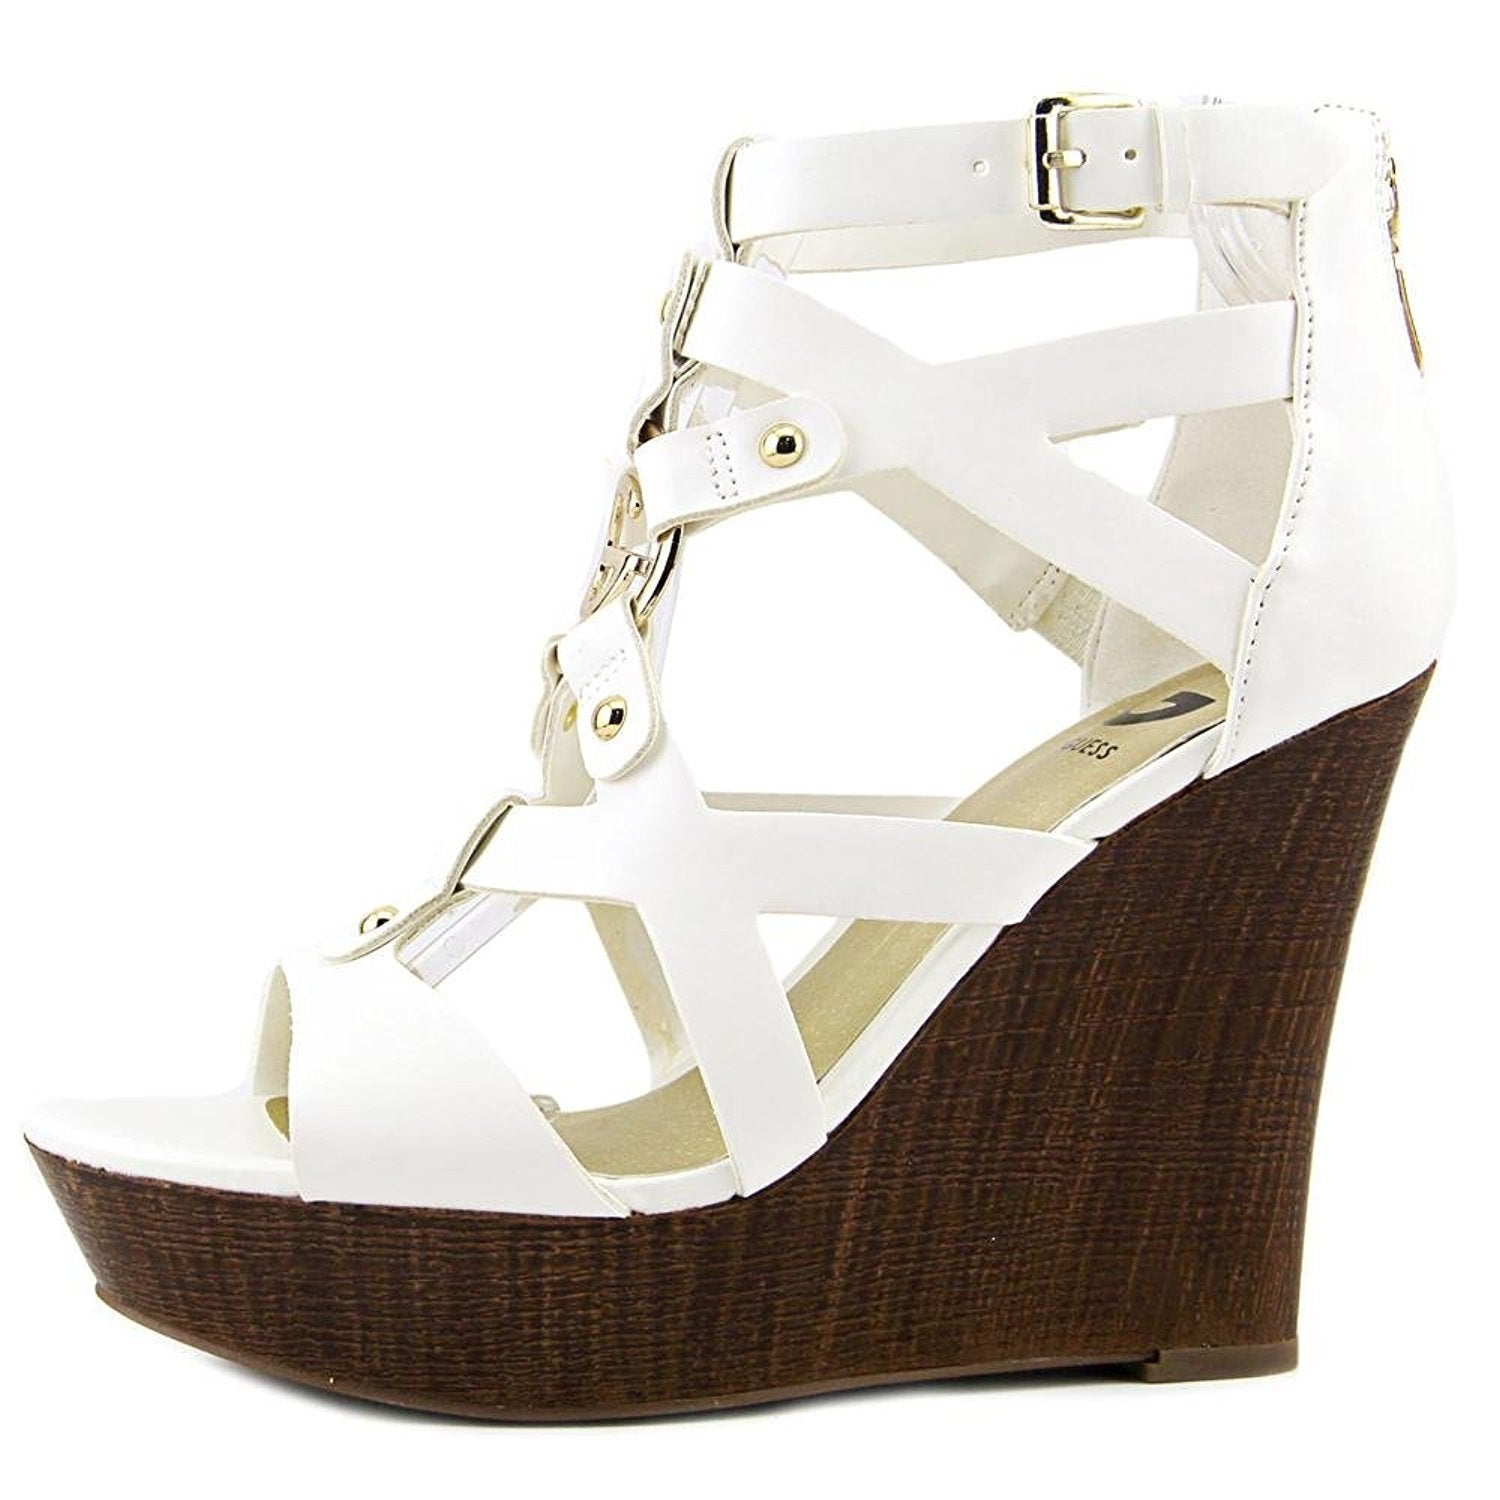 7eef905fe97 Shop G by Guess Womens Dodge Open Toe Casual Platform Sandals - Free  Shipping On Orders Over  45 - Overstock - 17637059